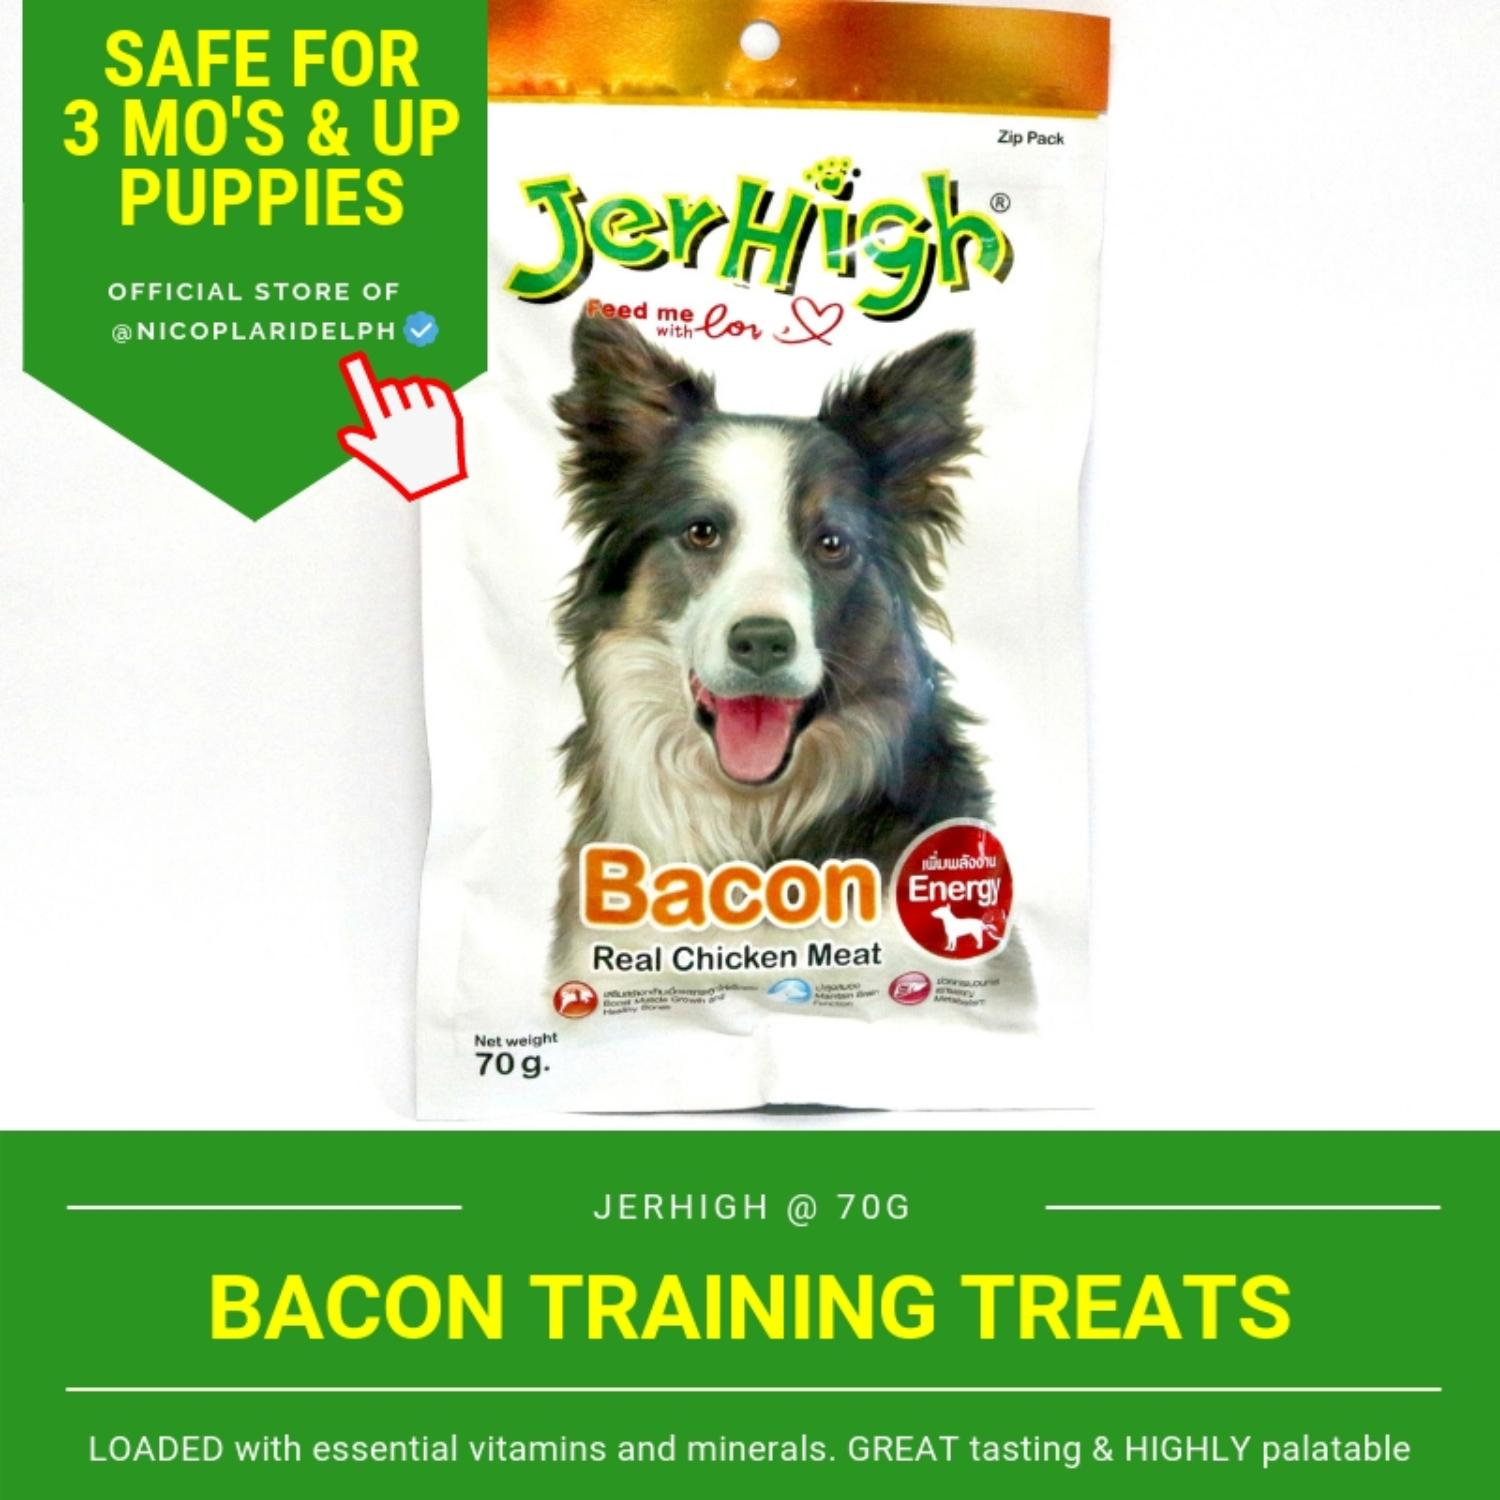 Jerhigh Bacon With Real Chicken Meat For Puppies And Adult Dogs (70g) By Nicoplaridelph.